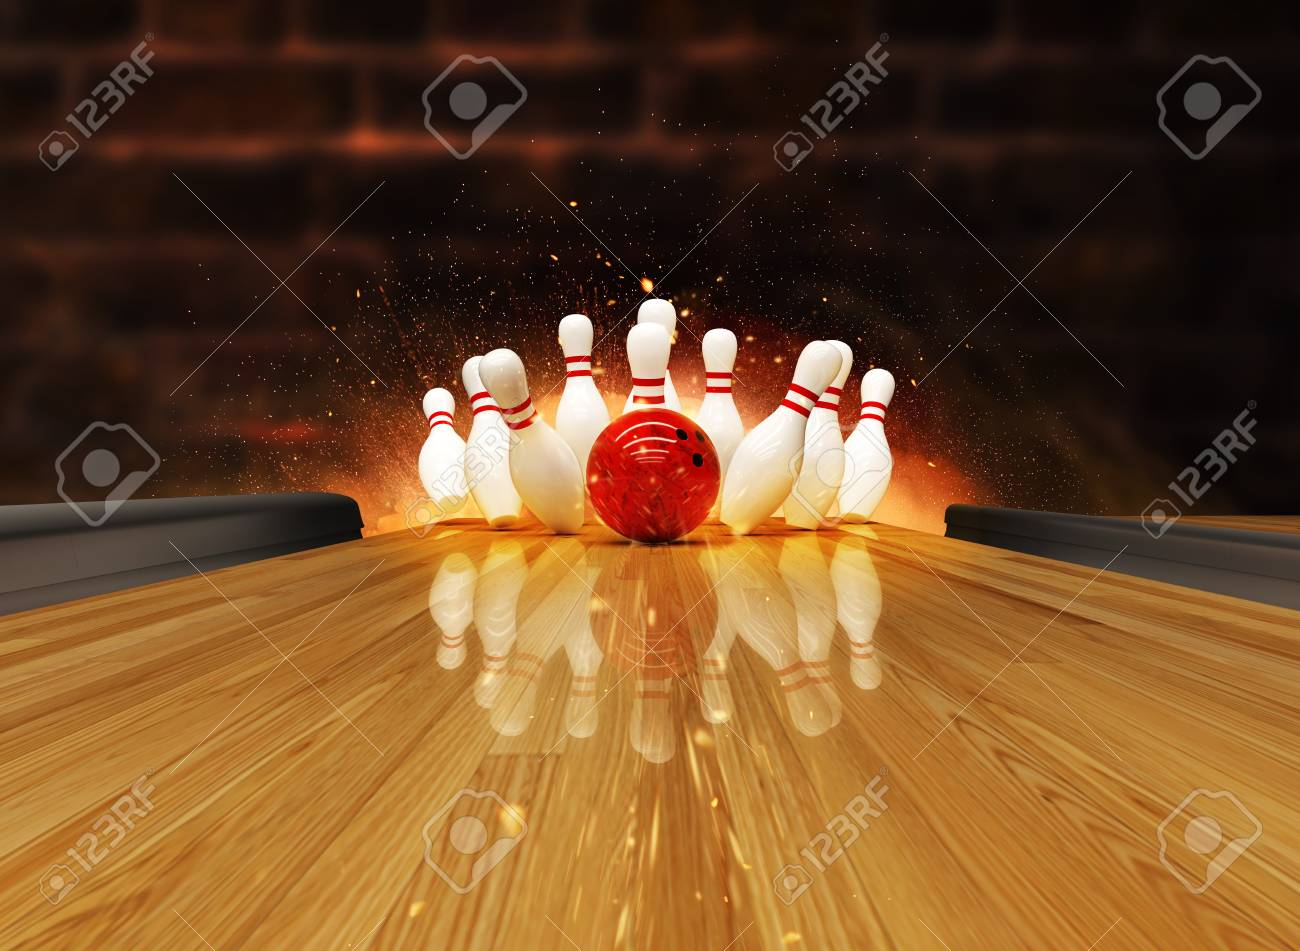 Bowling strike hit with fire explosion. Concept of success and win. - 122413984